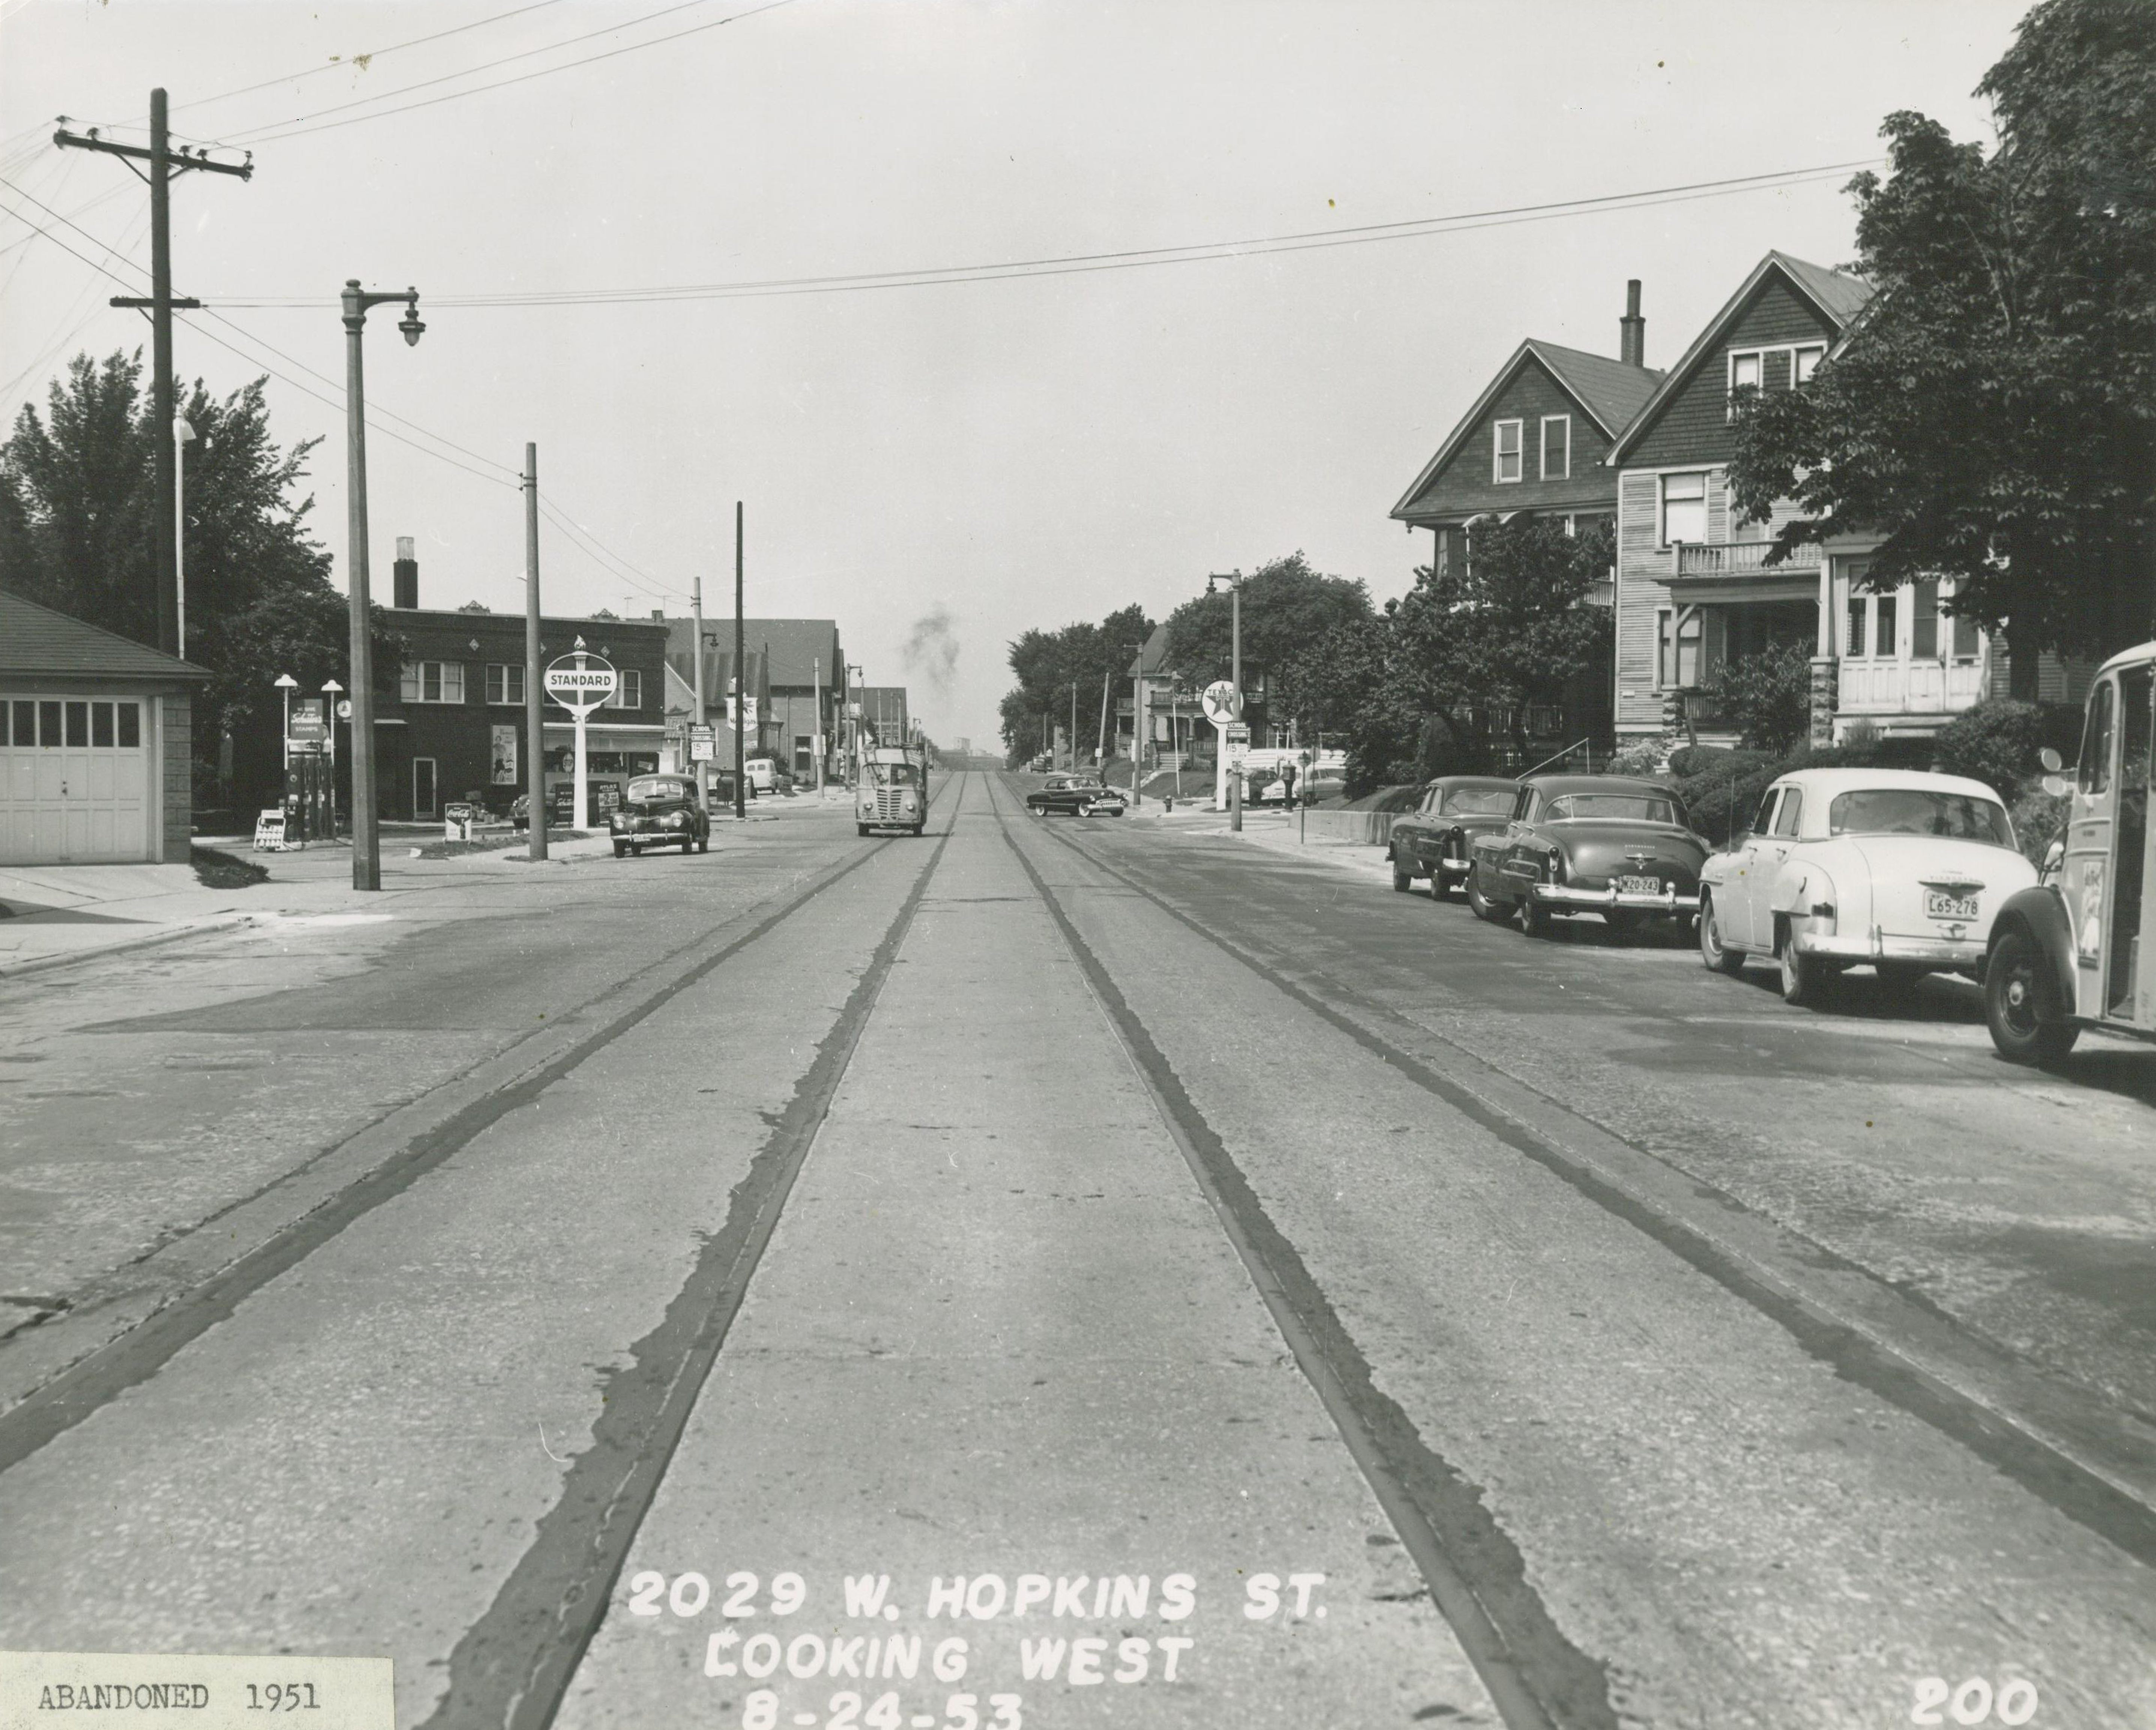 <table class=&quot;lightbox&quot;><tr><td colspan=2 class=&quot;lightbox-title&quot;>Franklin Heights Neighborhood</td></tr><tr><td colspan=2 class=&quot;lightbox-caption&quot;>This westward view of the 2000 block of Hopkins Street shows automobiles, houses, two gas stations, and trolley tracks in 1953.</td></tr><tr><td colspan=2 class=&quot;lightbox-spacer&quot;></td></tr><tr class=&quot;lightbox-detail&quot;><td class=&quot;cell-title&quot;>Source: </td><td class=&quot;cell-value&quot;>From the Historic Photo Collection of the Milwaukee Public Library. Reprinted with permission.<br /><a href=&quot;http://content.mpl.org/cdm/singleitem/collection/HstoricPho/id/8328/rec/10&quot; target=&quot;_blank&quot;>Milwaukee Public Library</a></td></tr><tr class=&quot;filler-row&quot;><td colspan=2>&nbsp;</td></tr></table>